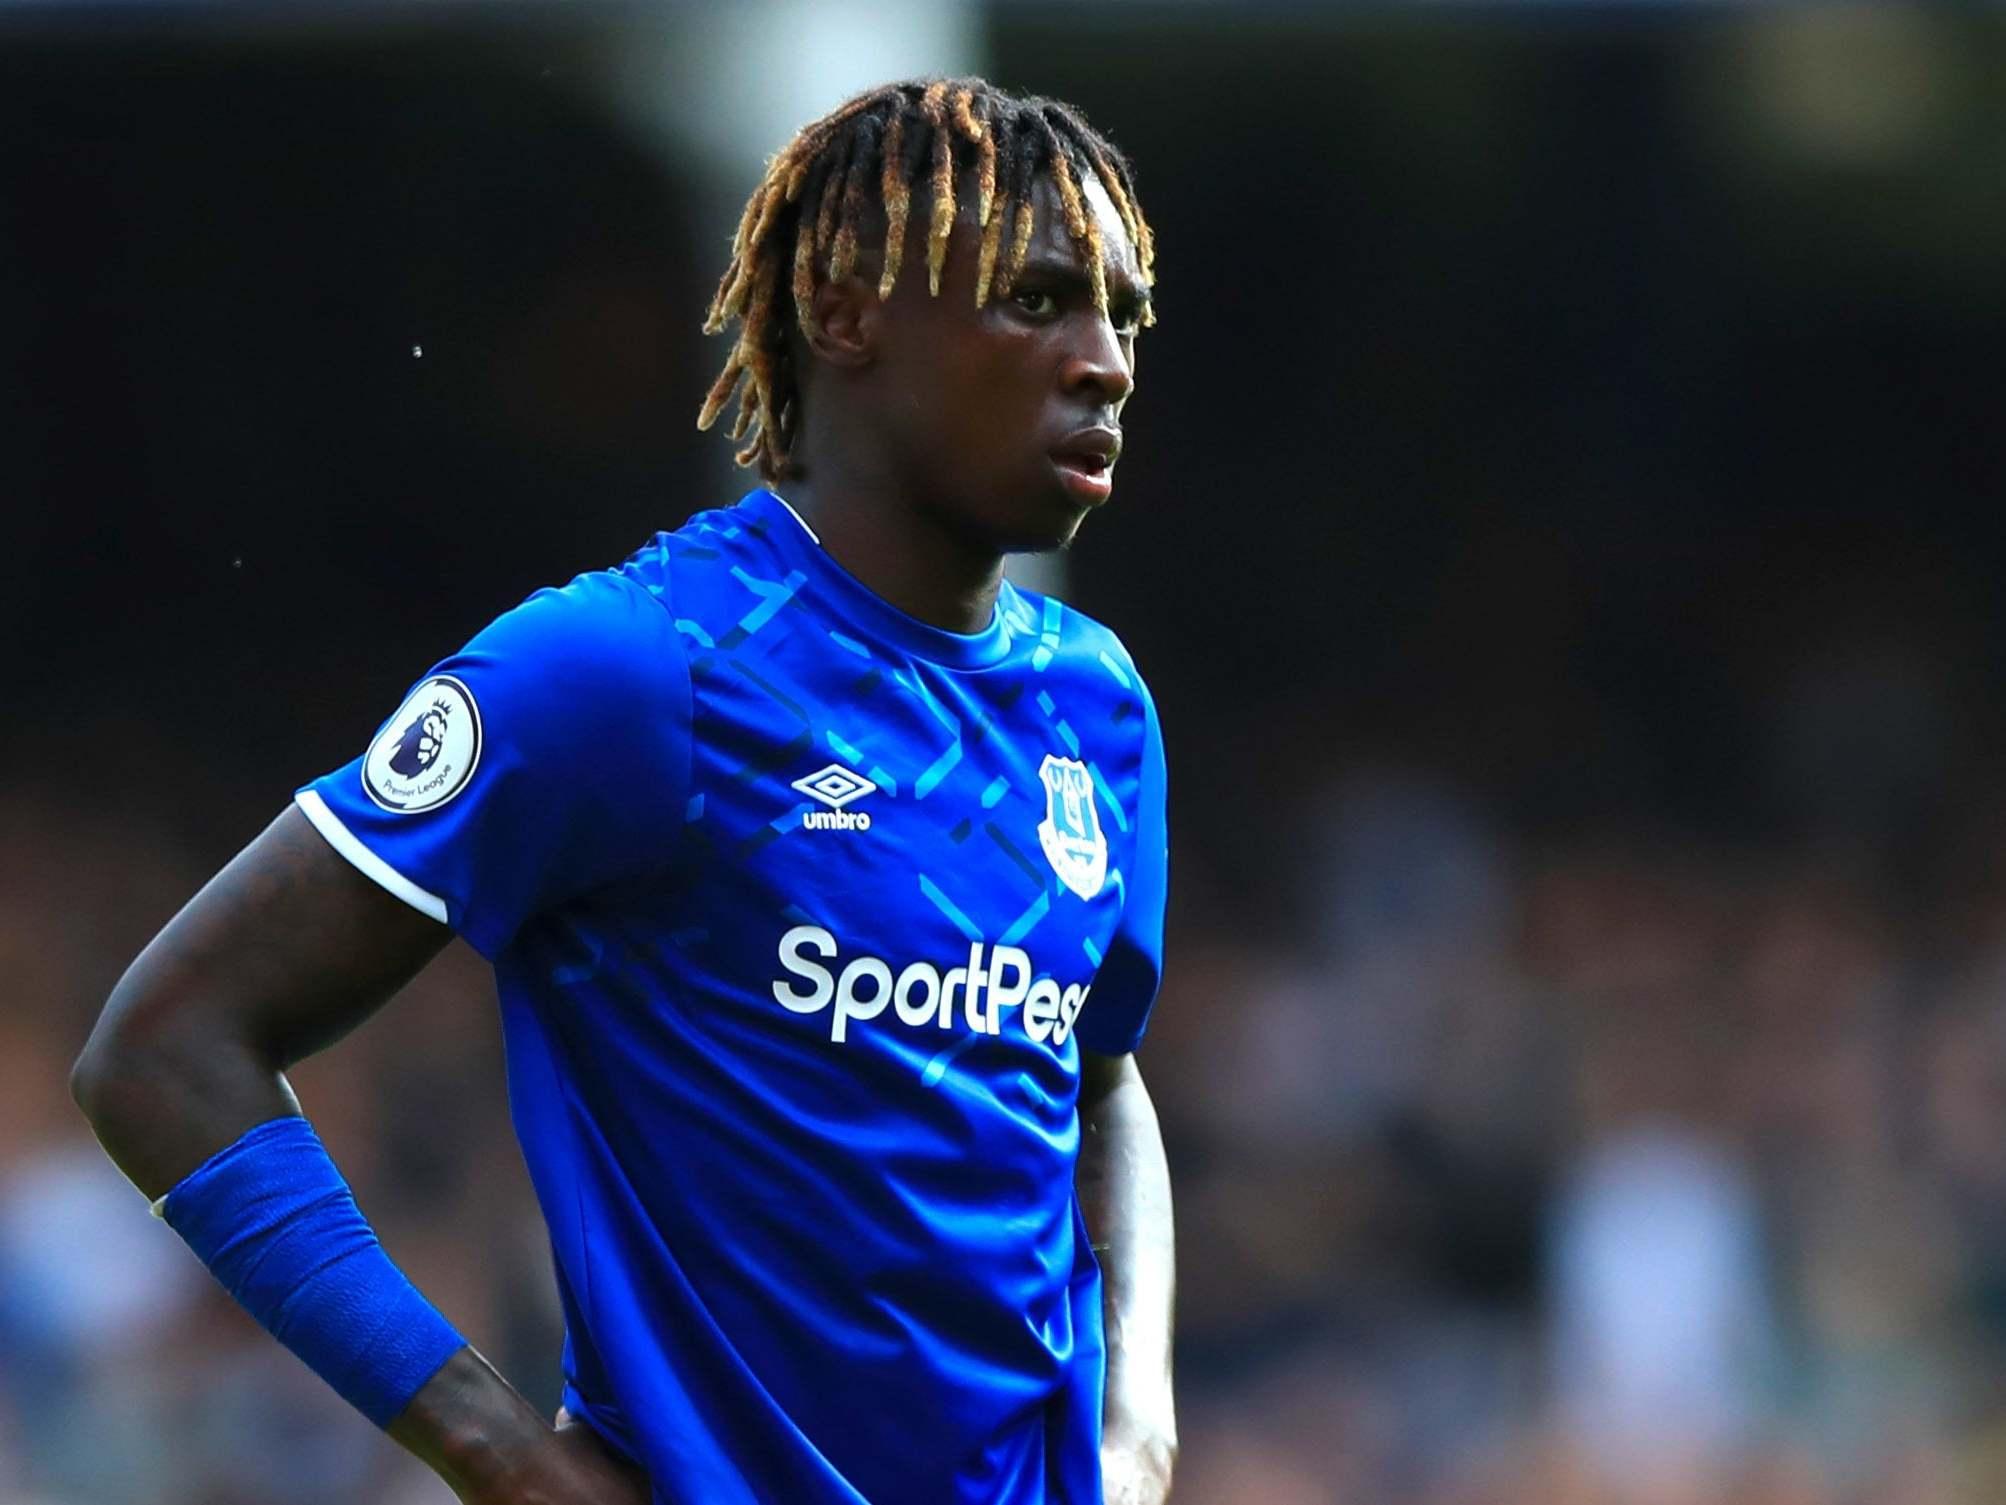 Graeme Souness Criticised For Speculating On Moise Kean S Off The Field Activities The Independent The Independent